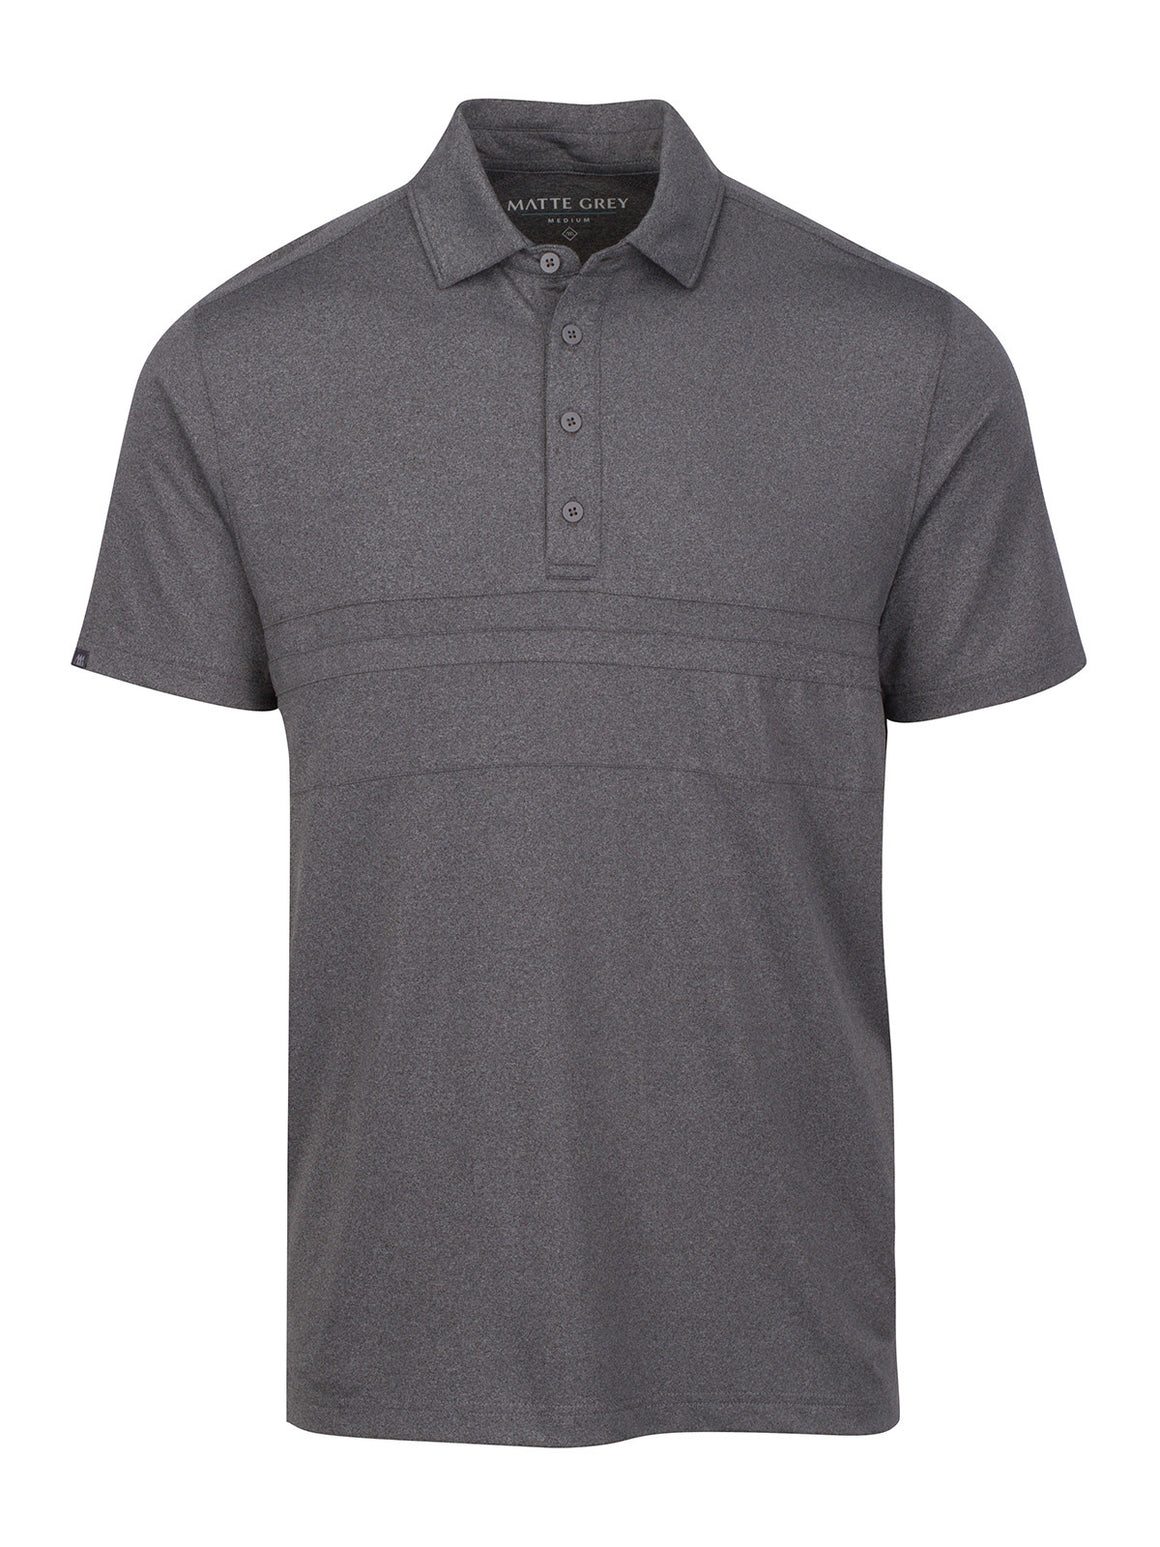 Anders - Charcoal Heather